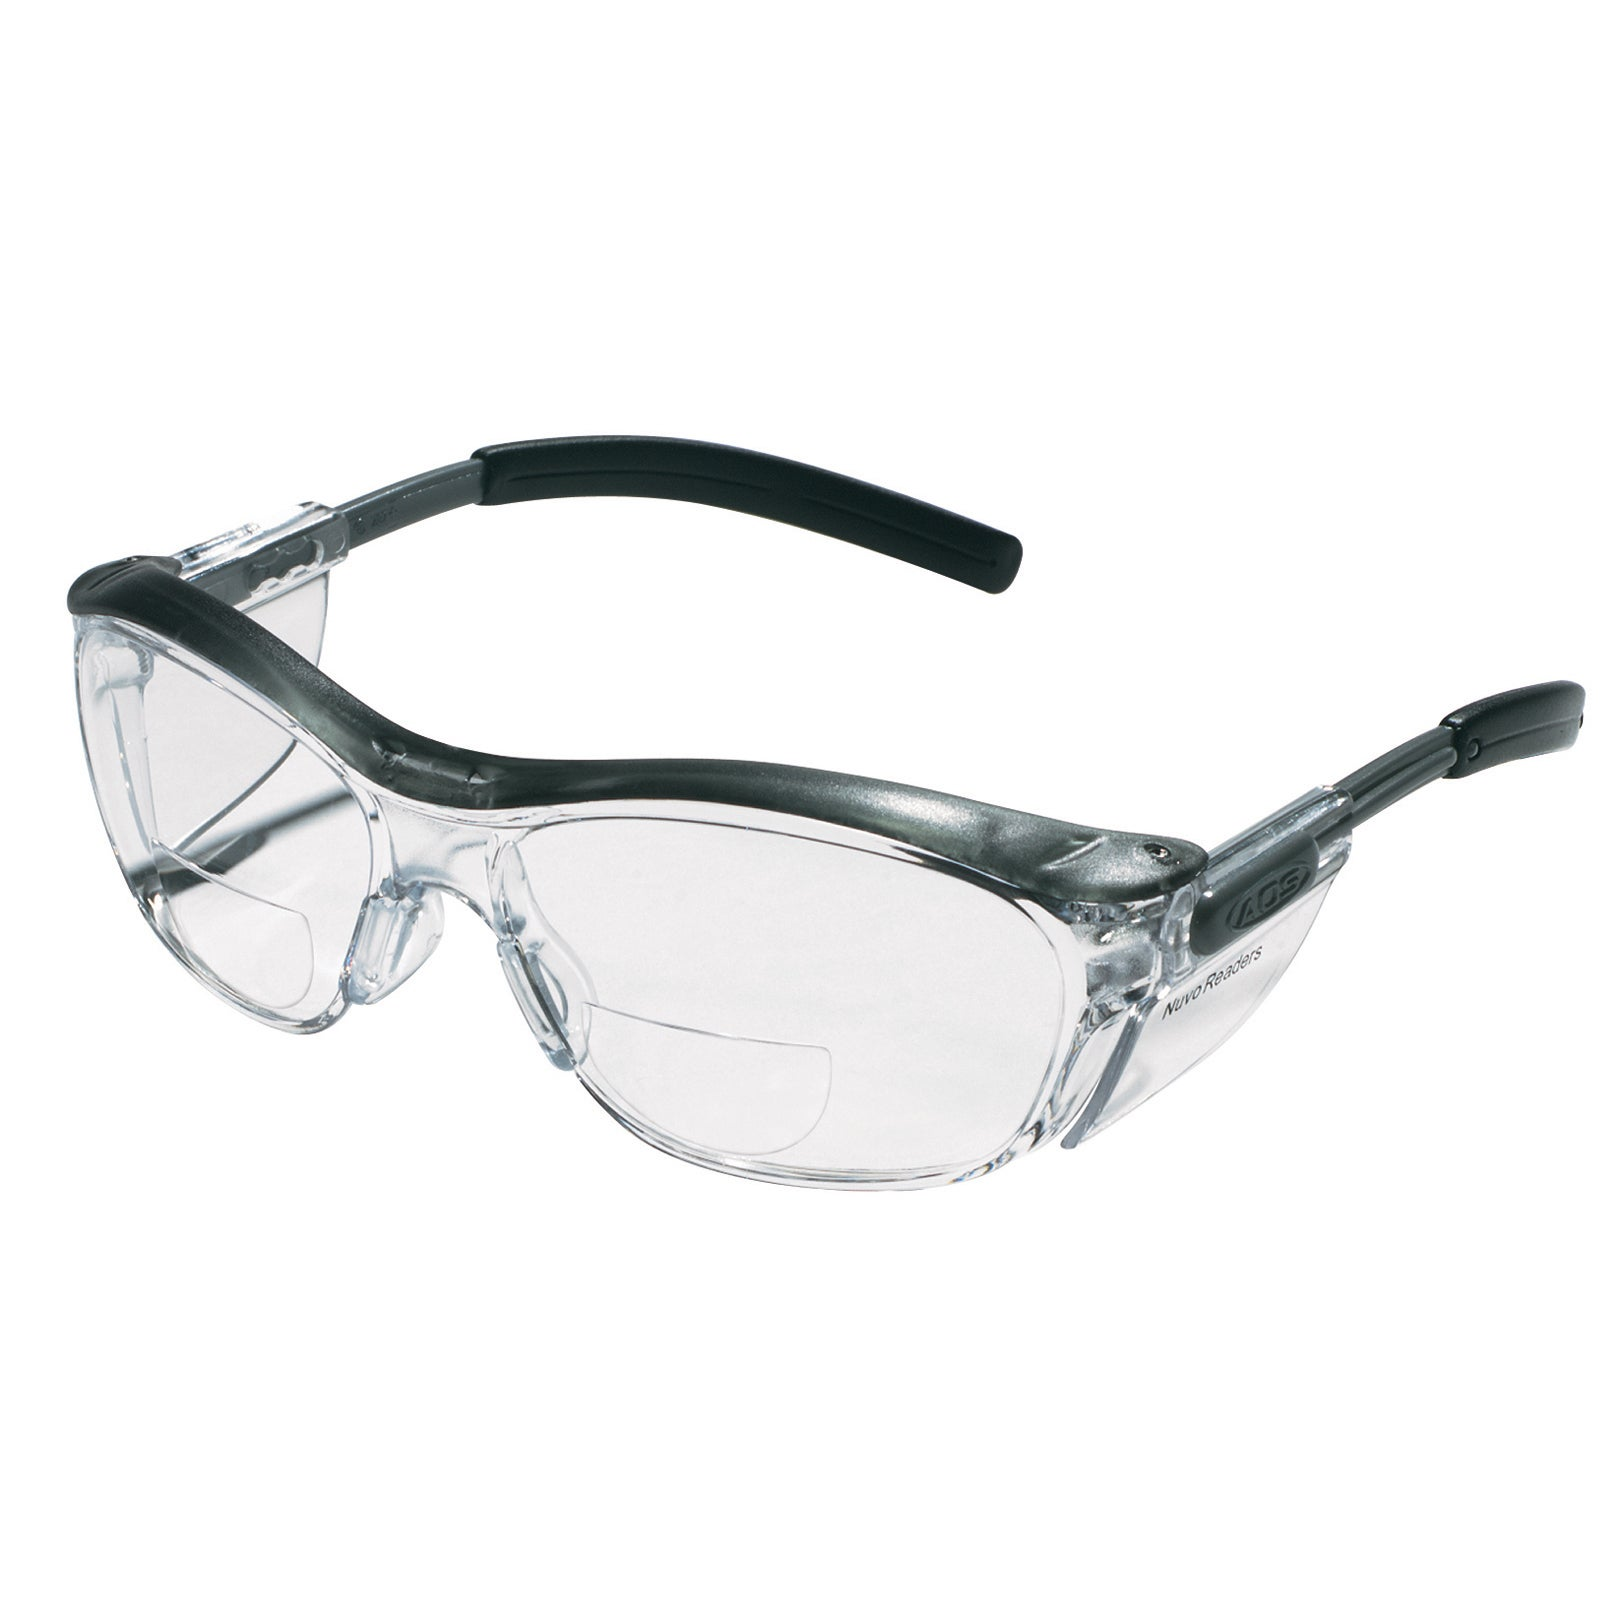 3M 91192-00002T 2.0 Readers Safety Eyewear (Safety gear),...